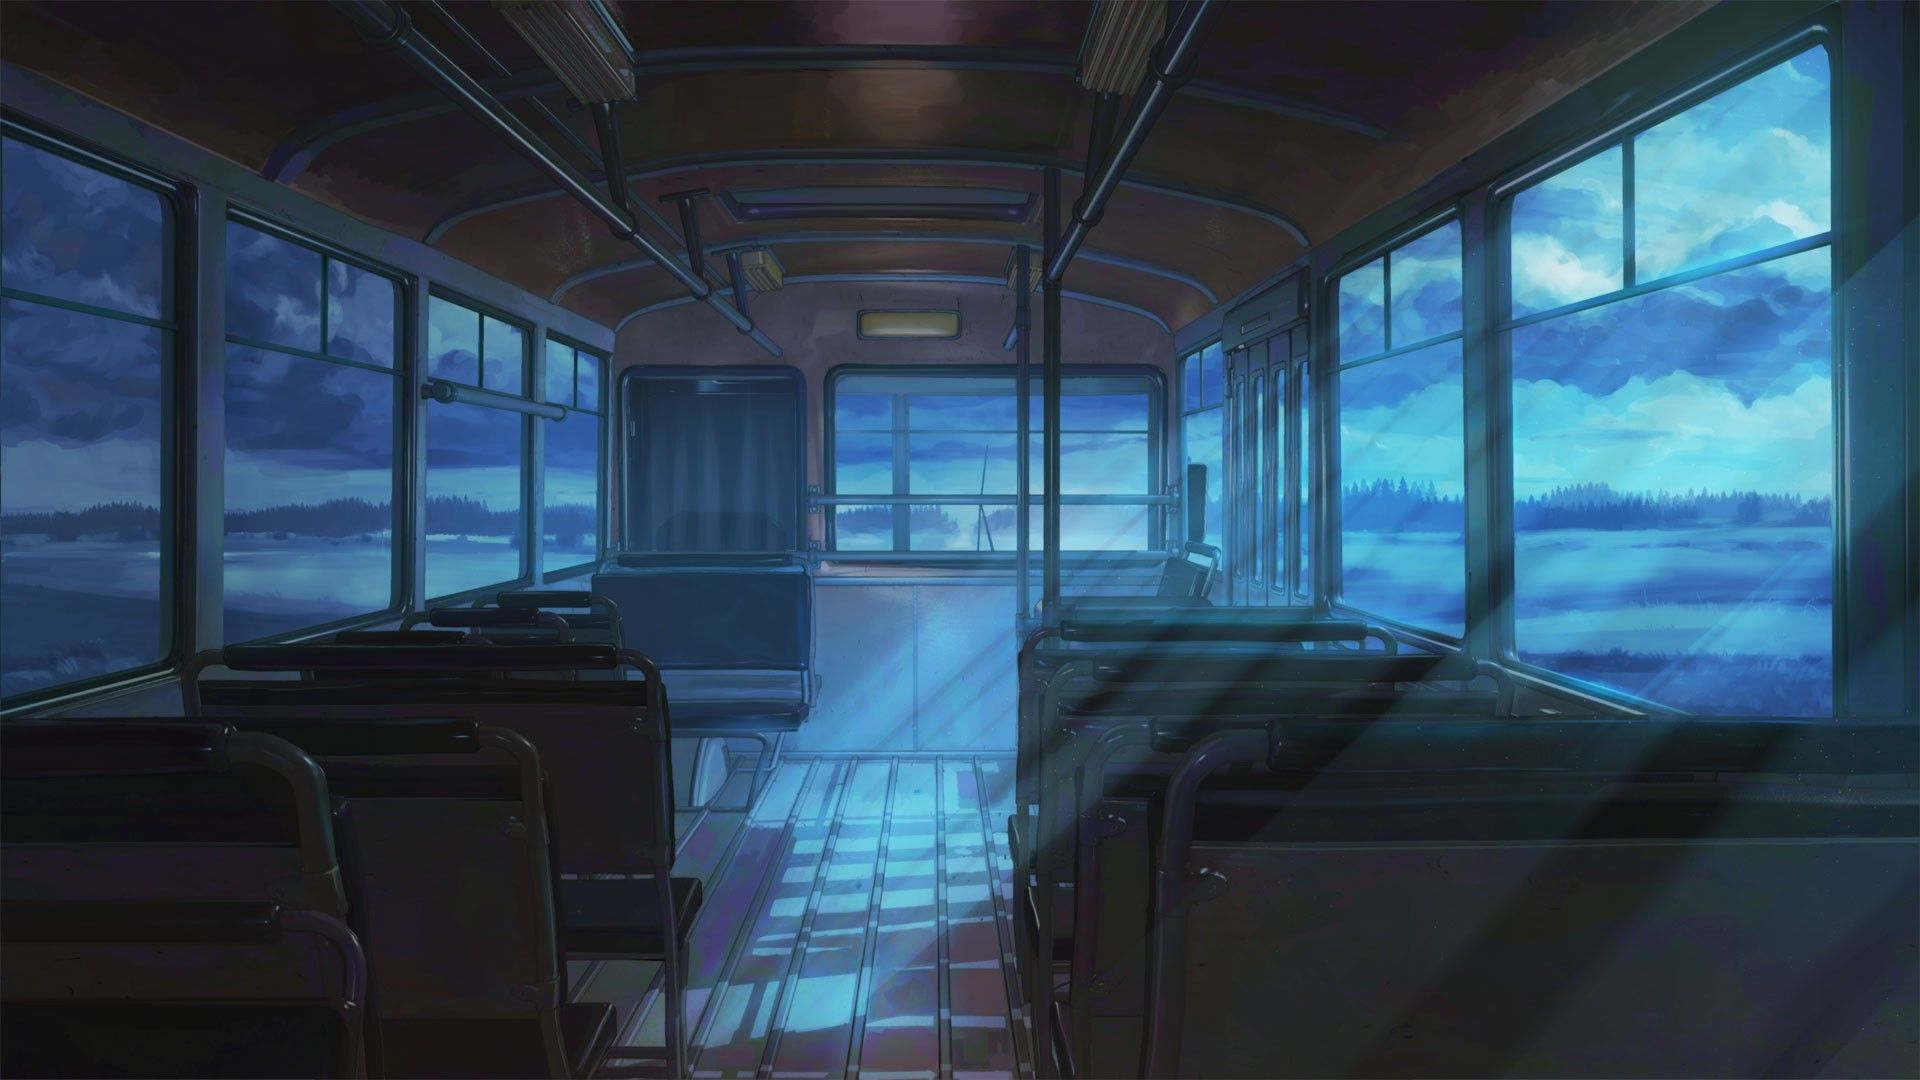 Games_Bus_number_40_in_the_game_Endless_Summer_100617_.jpg